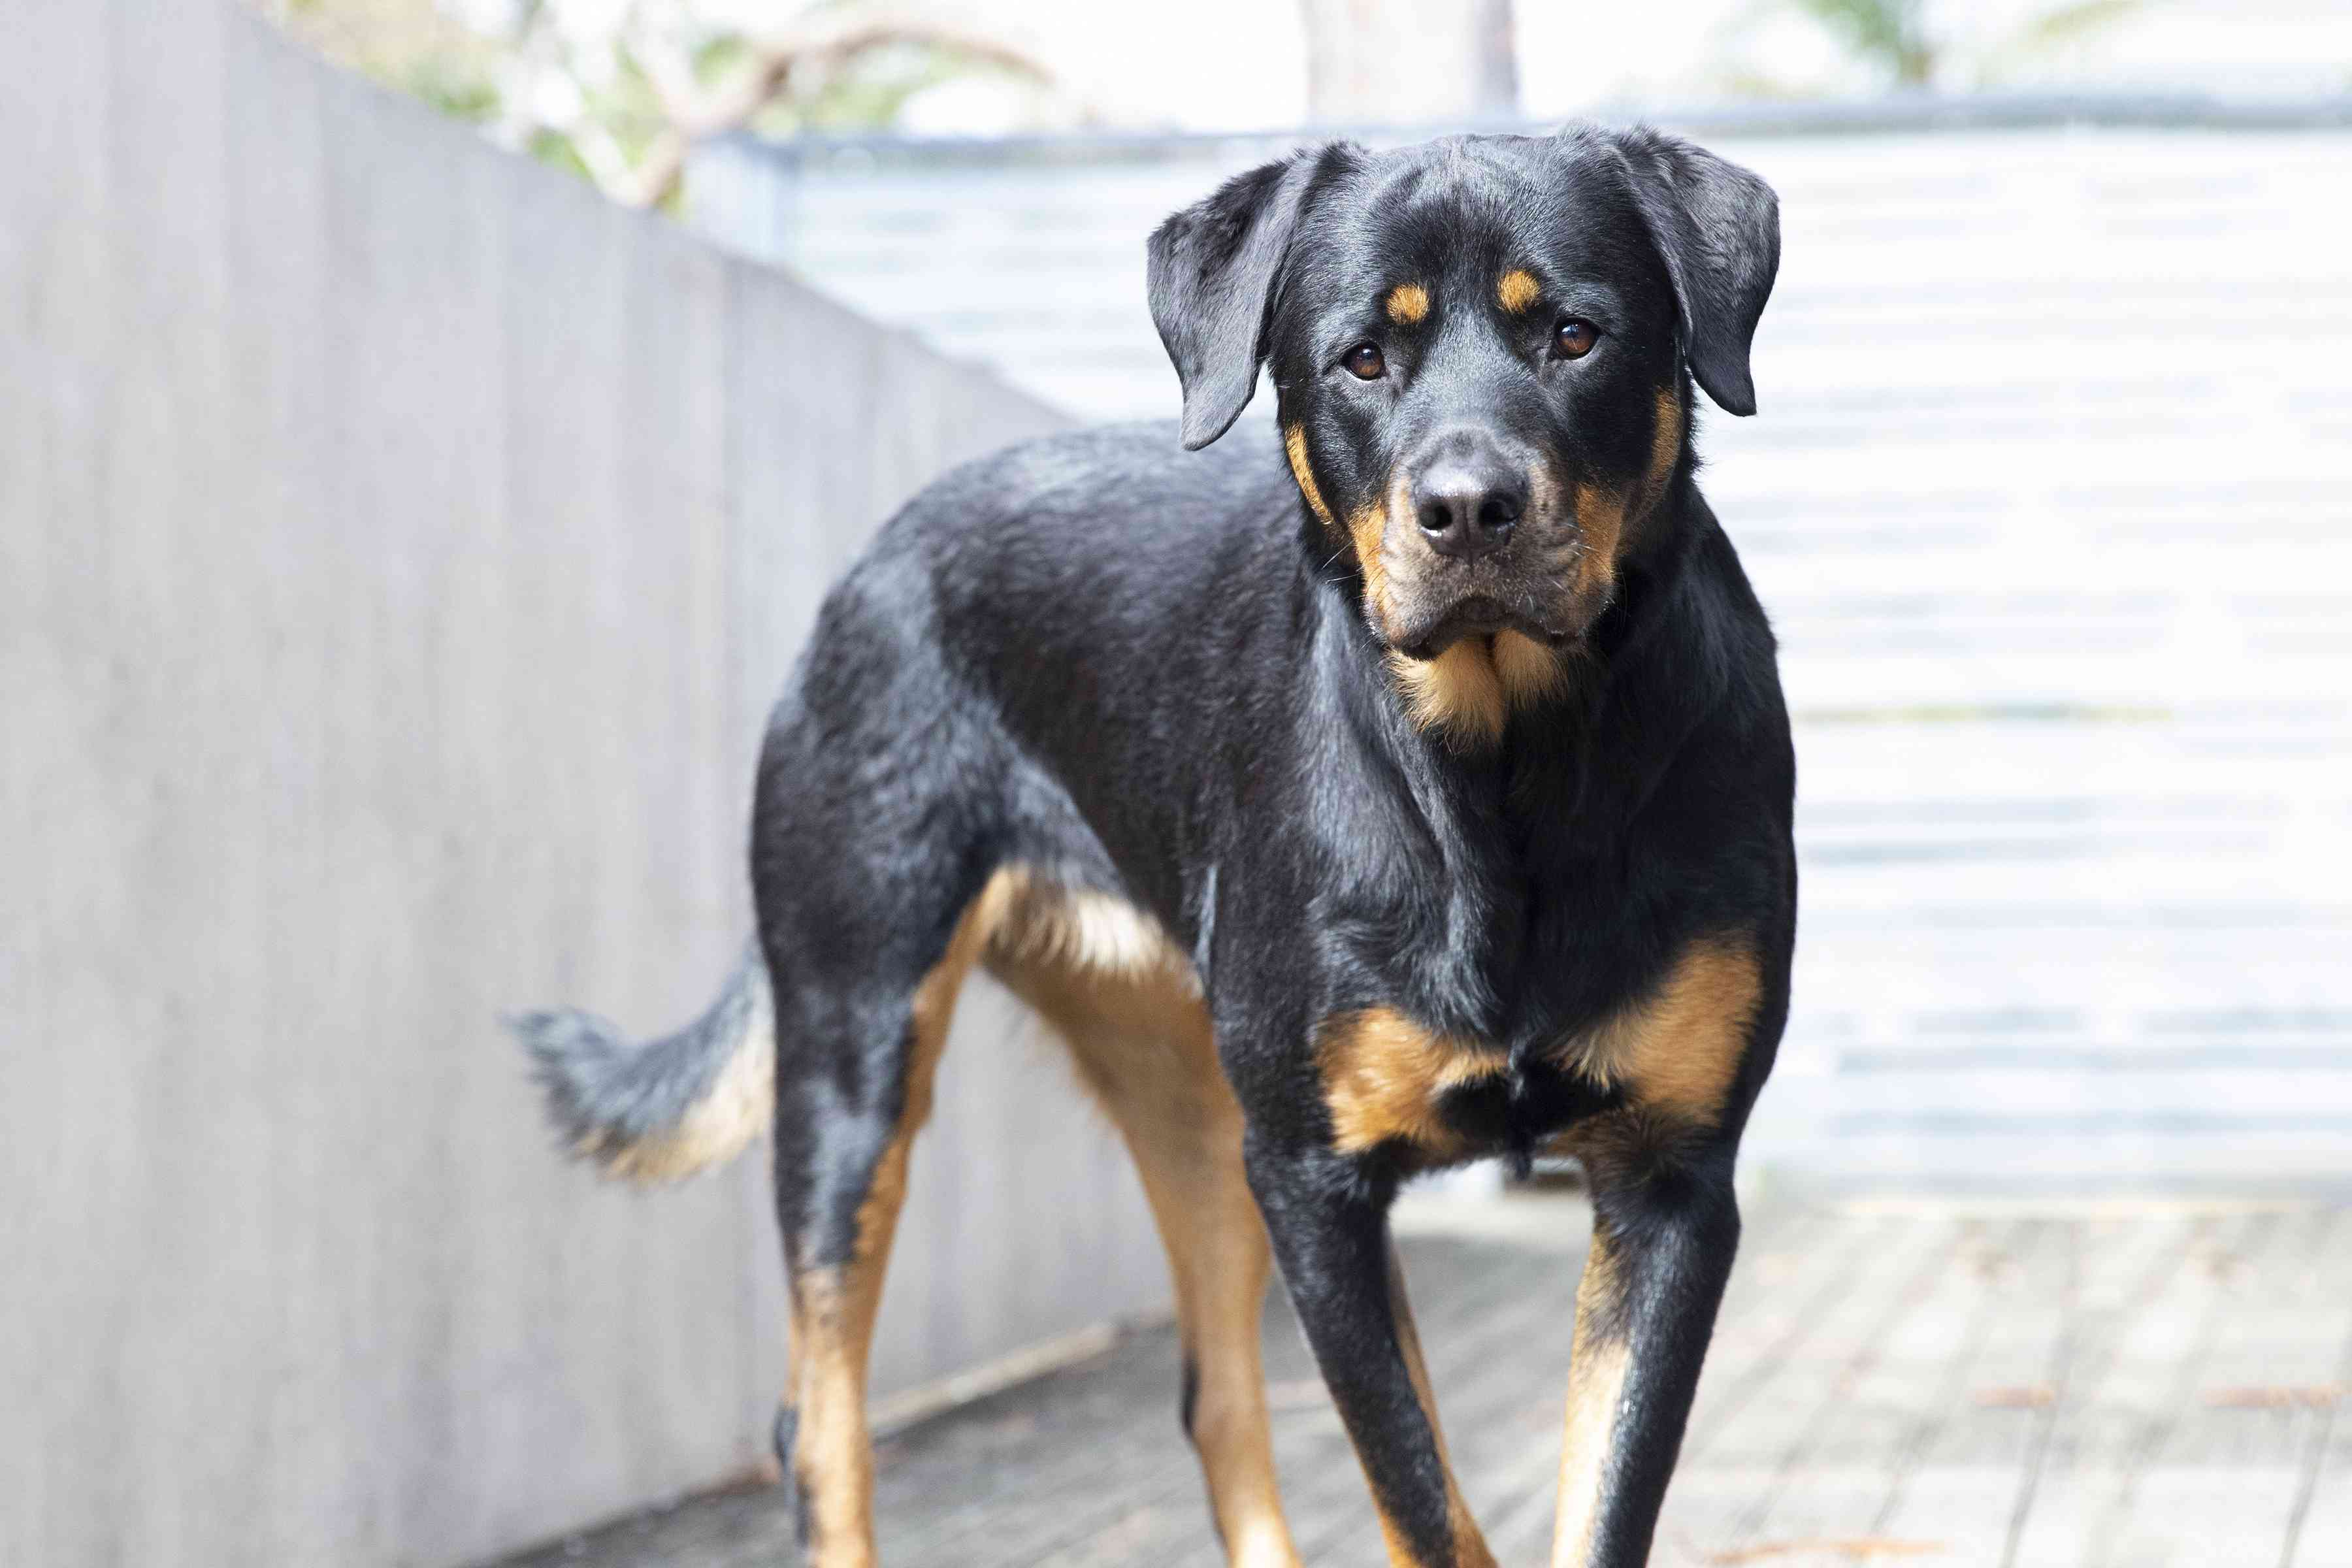 Rottweiler dog with black and brown fur standing outdoors